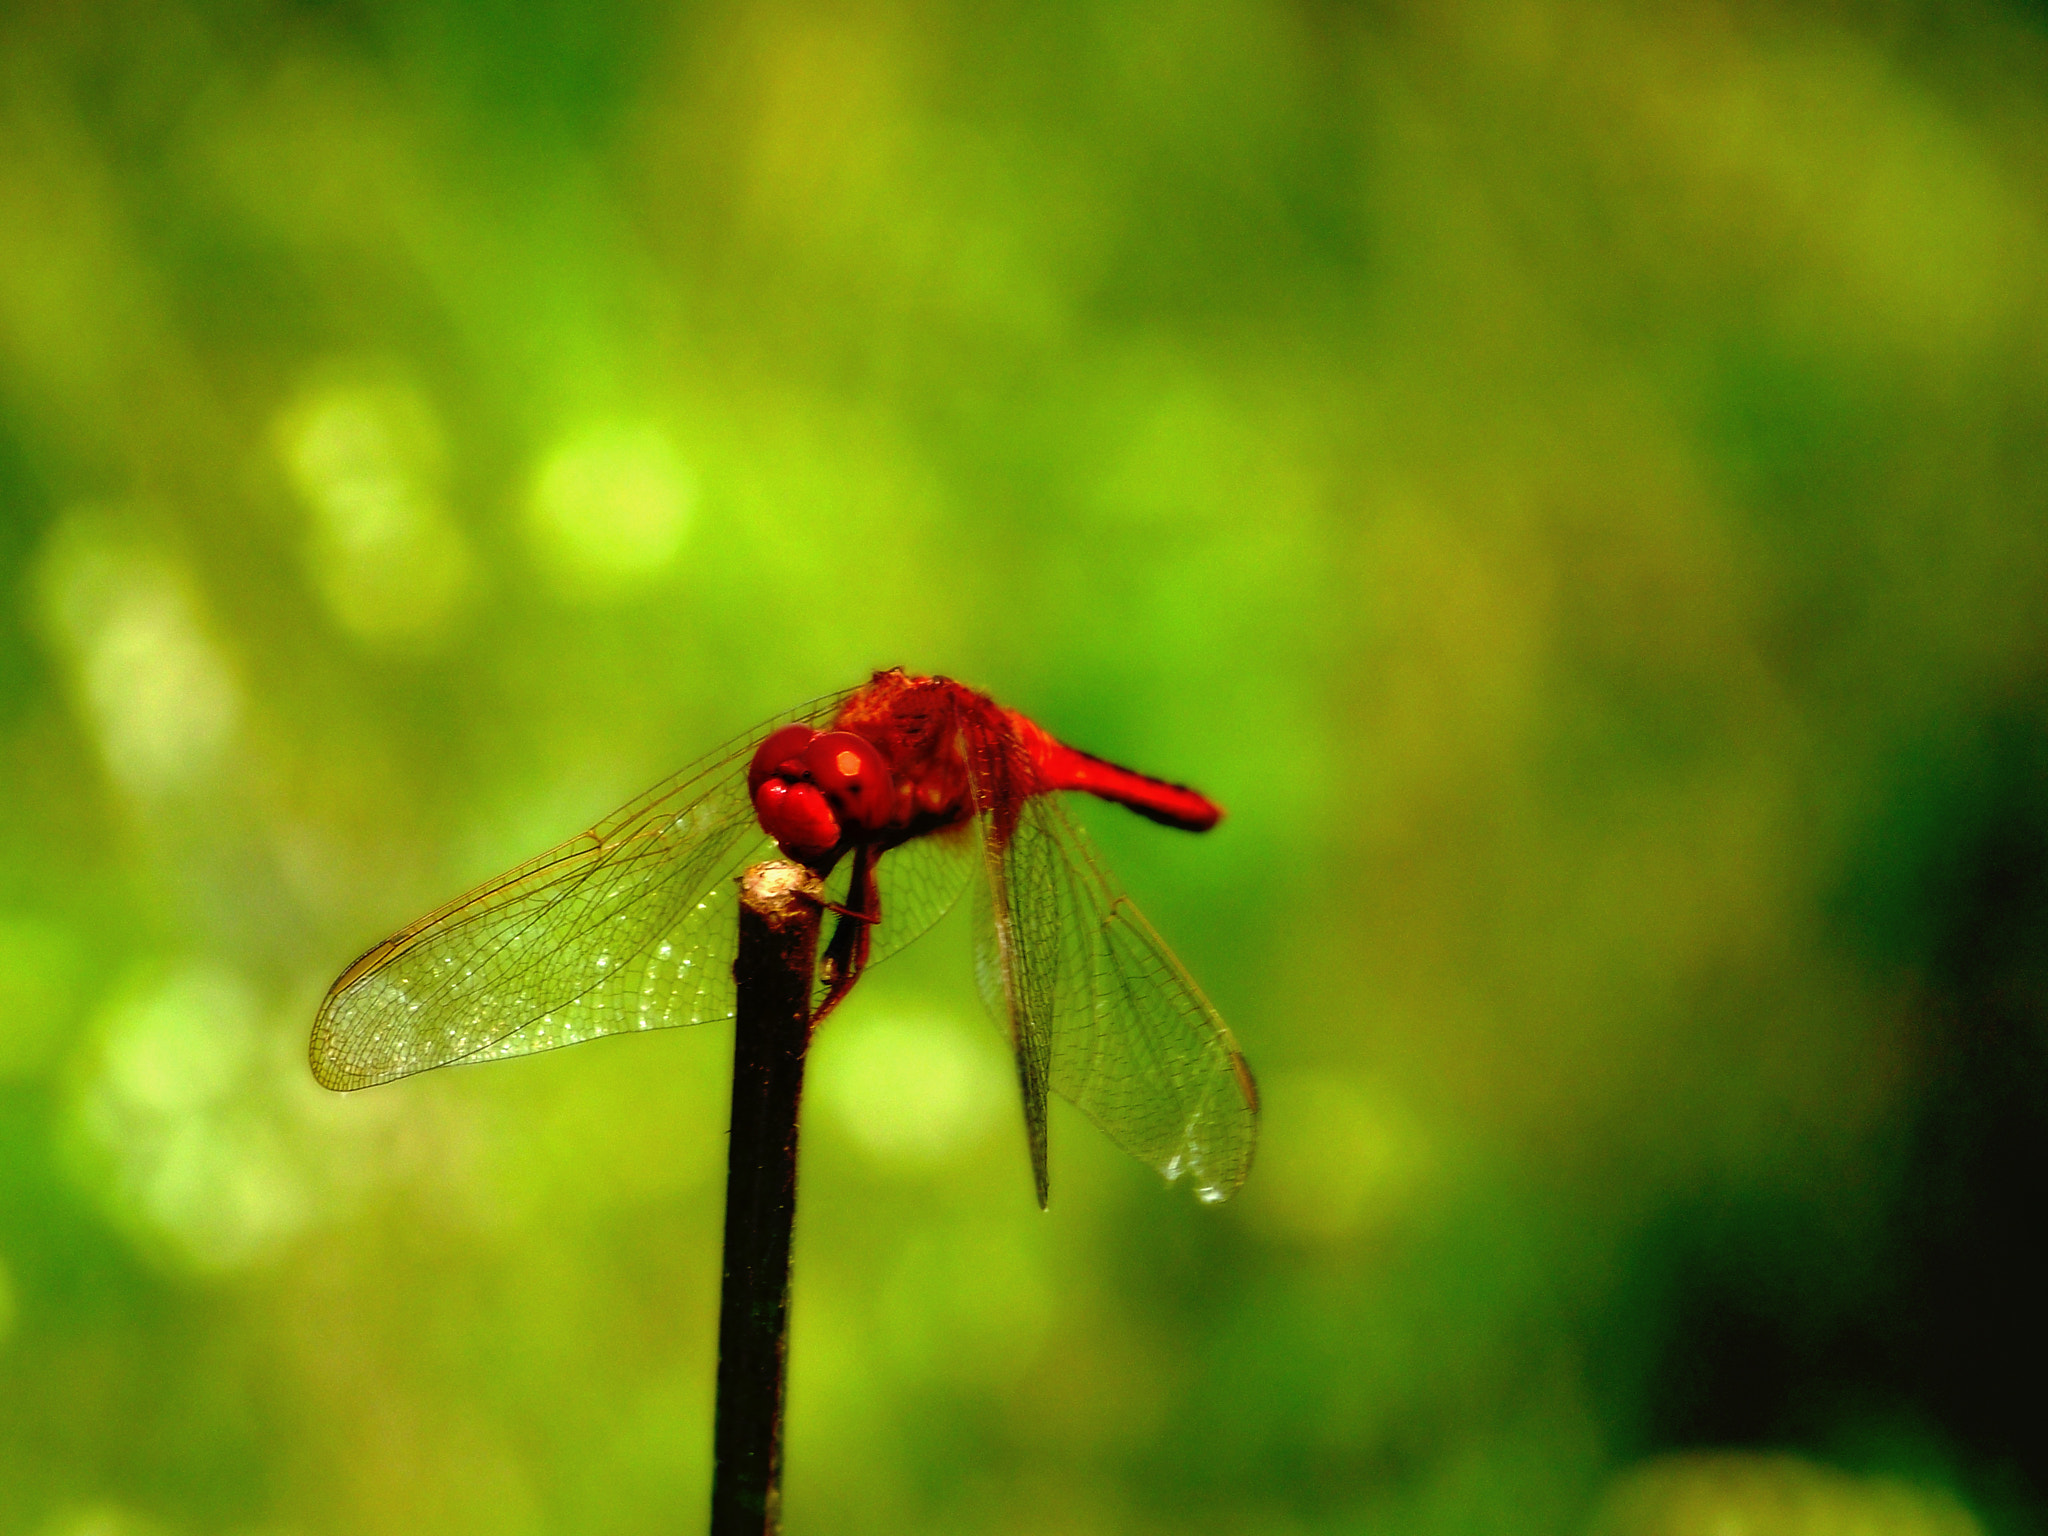 Photograph Red Dragonfly by Gopal Veeranala on 500px